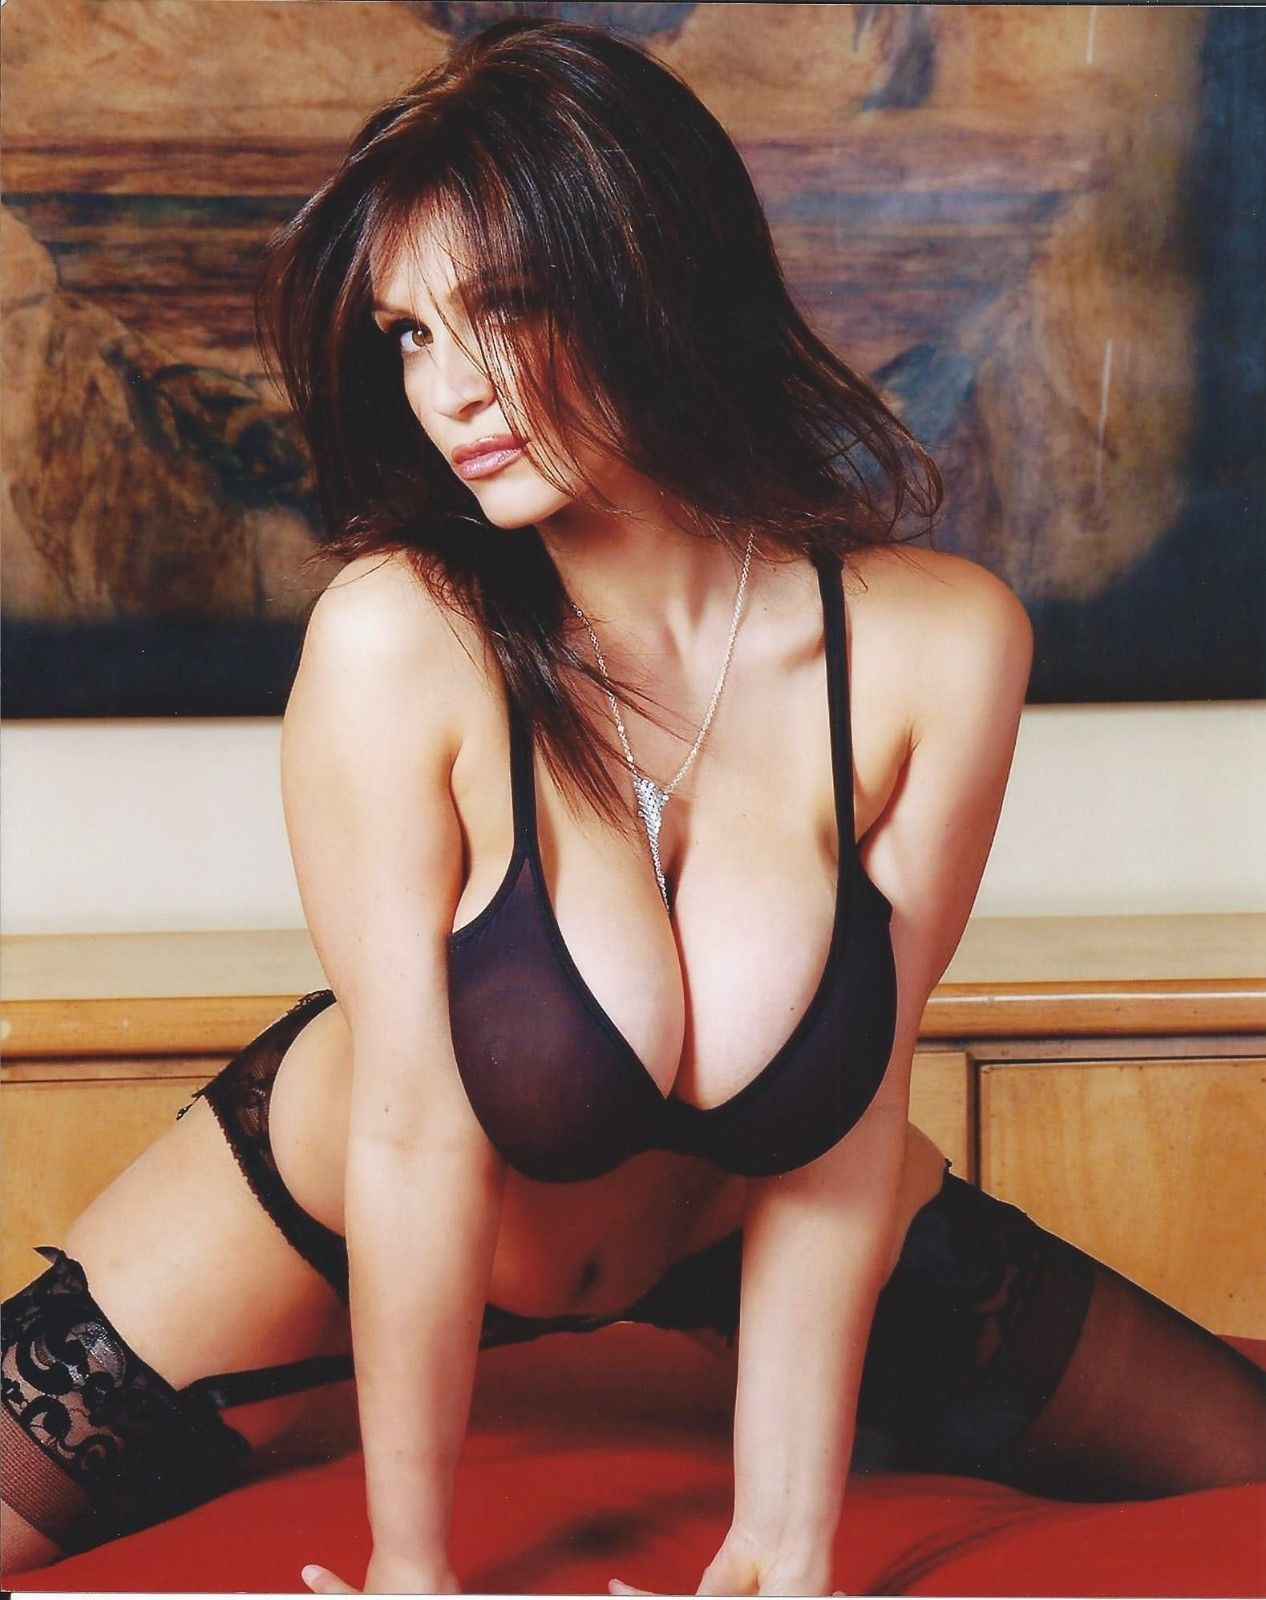 naked-erotic-lingerie-customer-gallery-jlo-pictures-brany